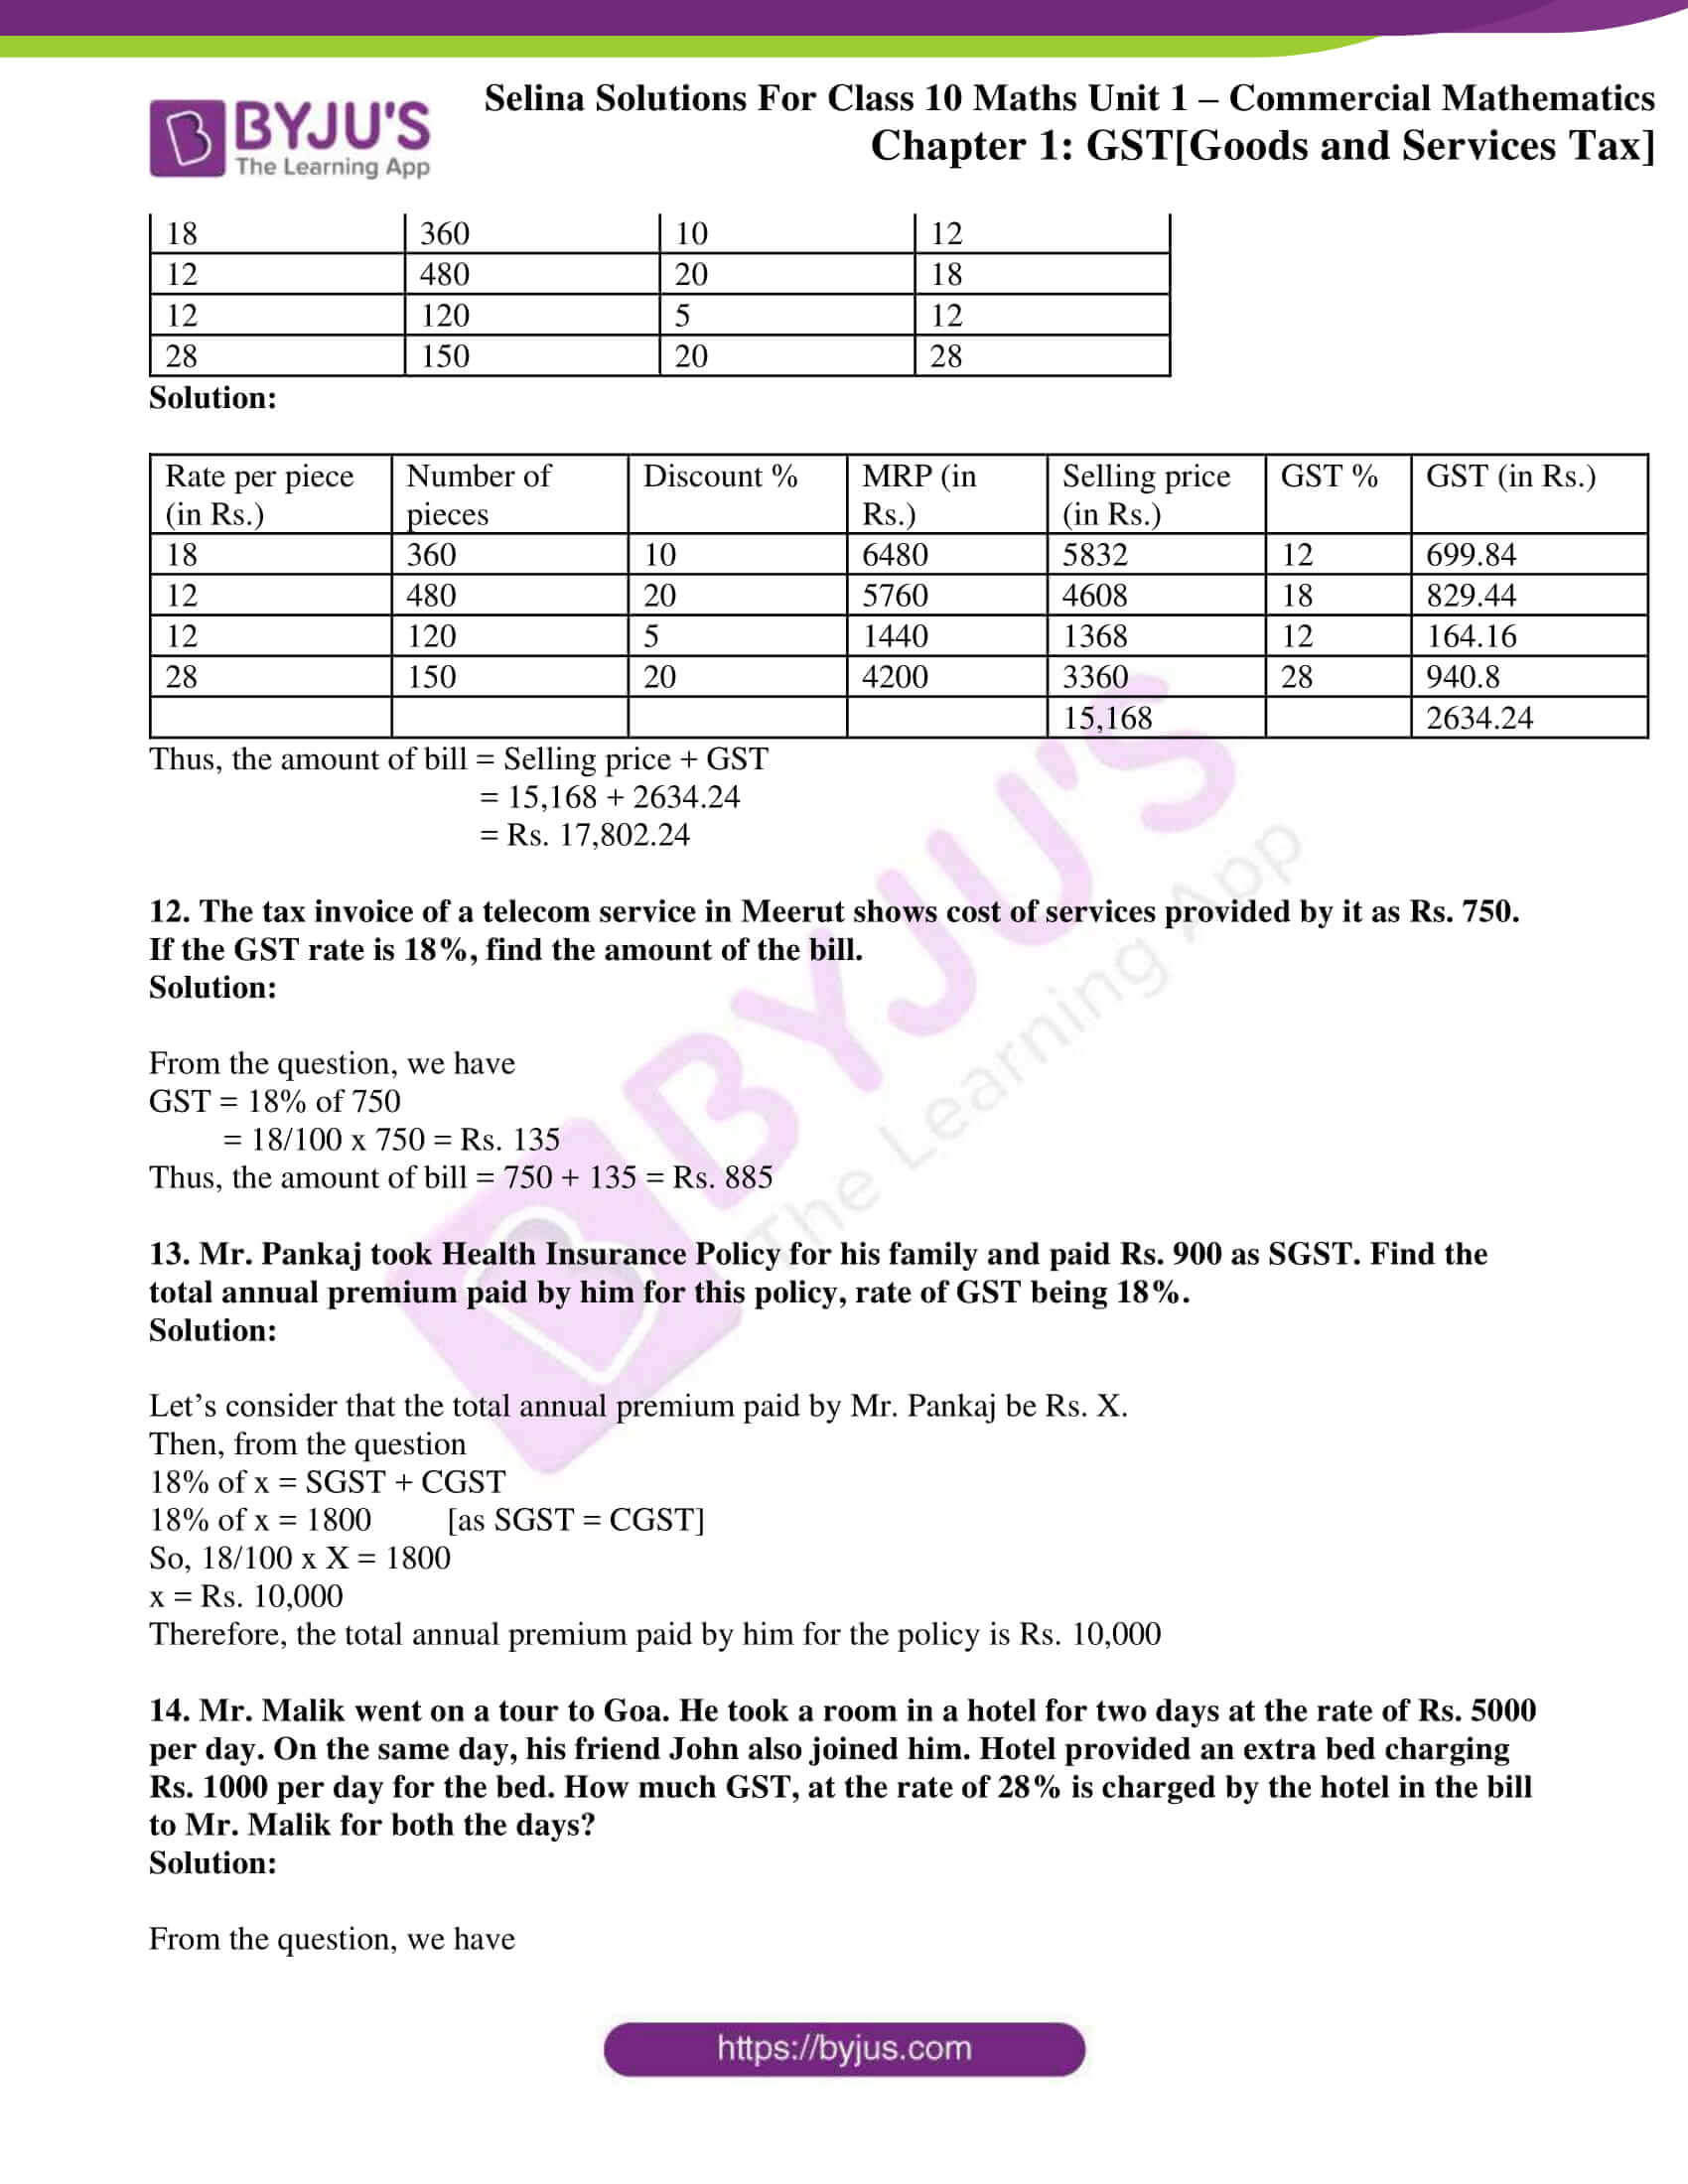 selina solution concise maths class 10 chapter 1a